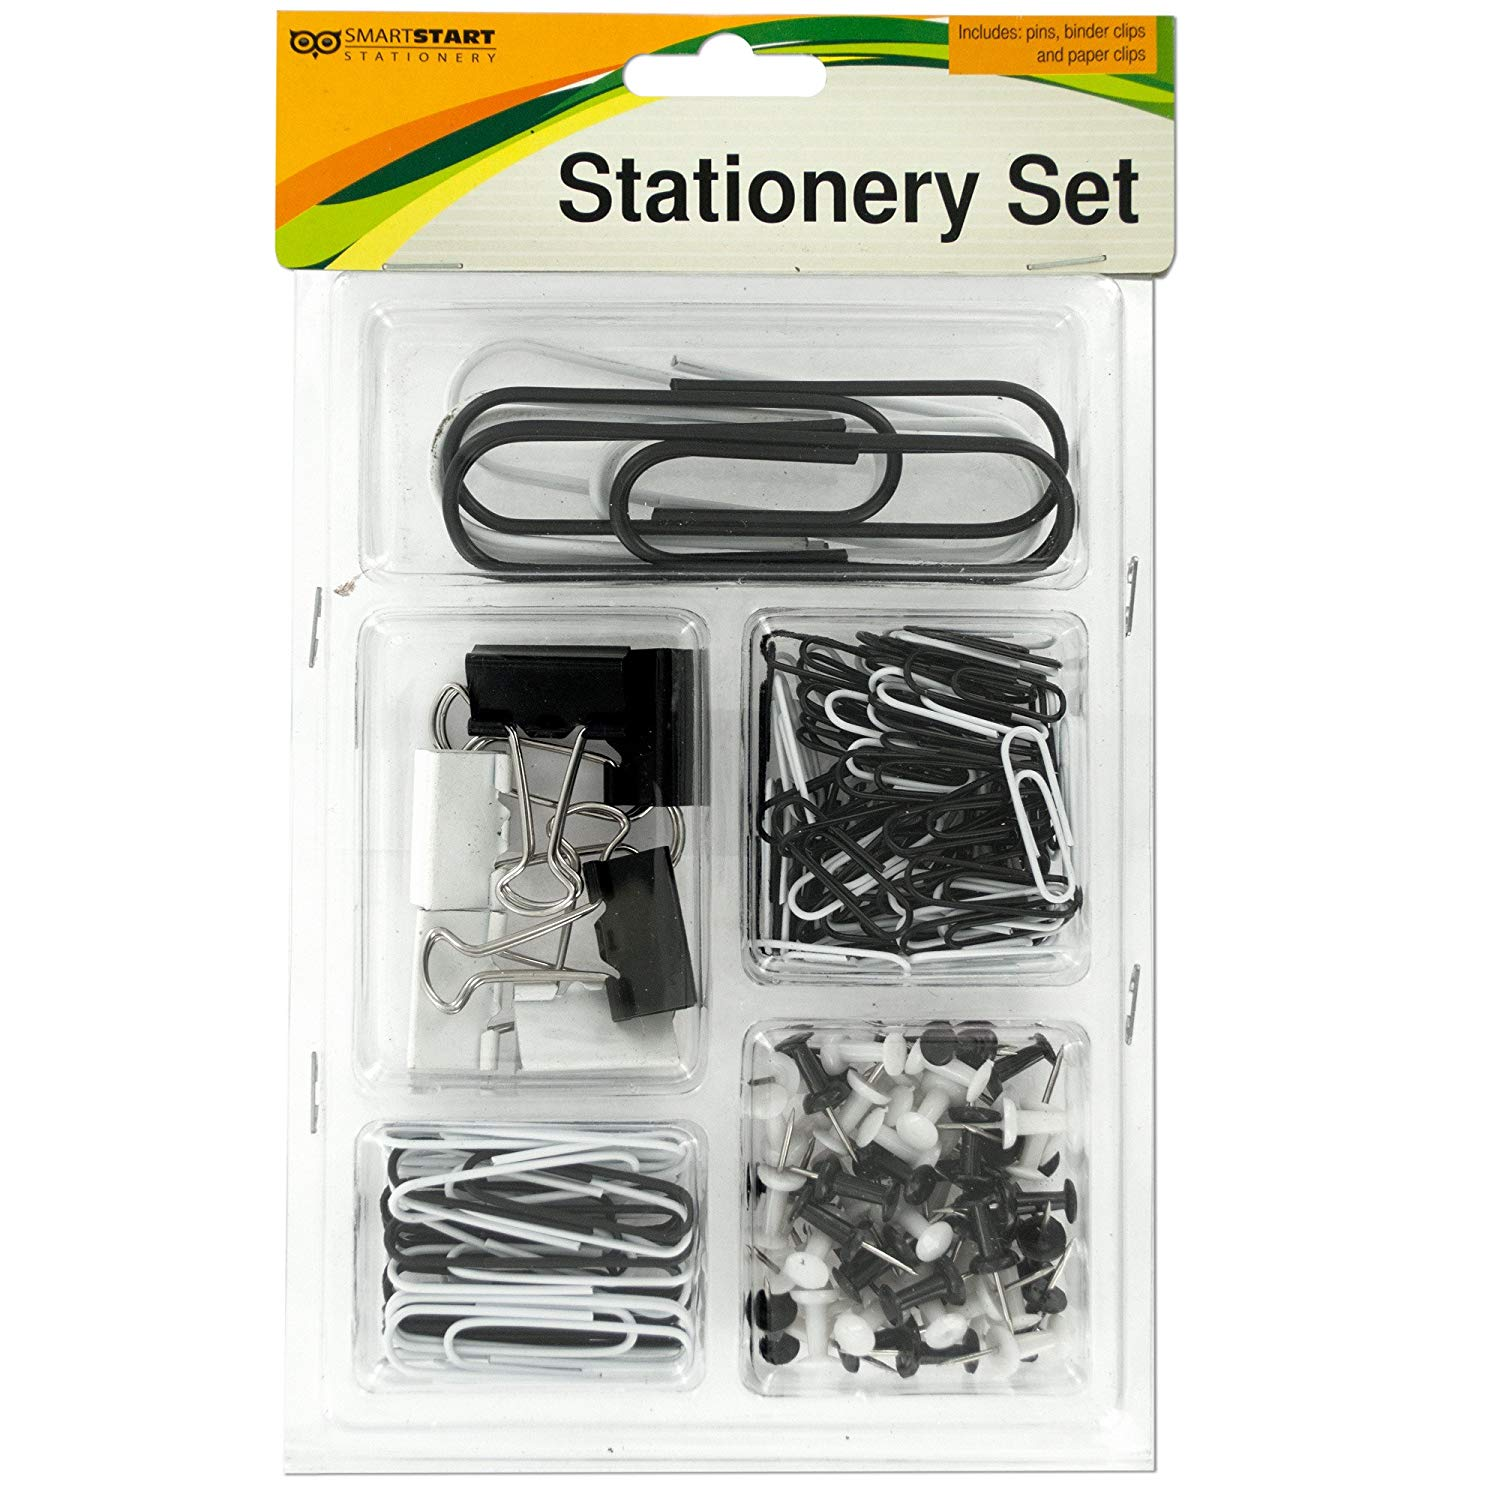 123-Wholesale - Set of 18 Push Pins & Clips Stationery Set - School & Office Supplies Paper Clips, Clamps & Punches